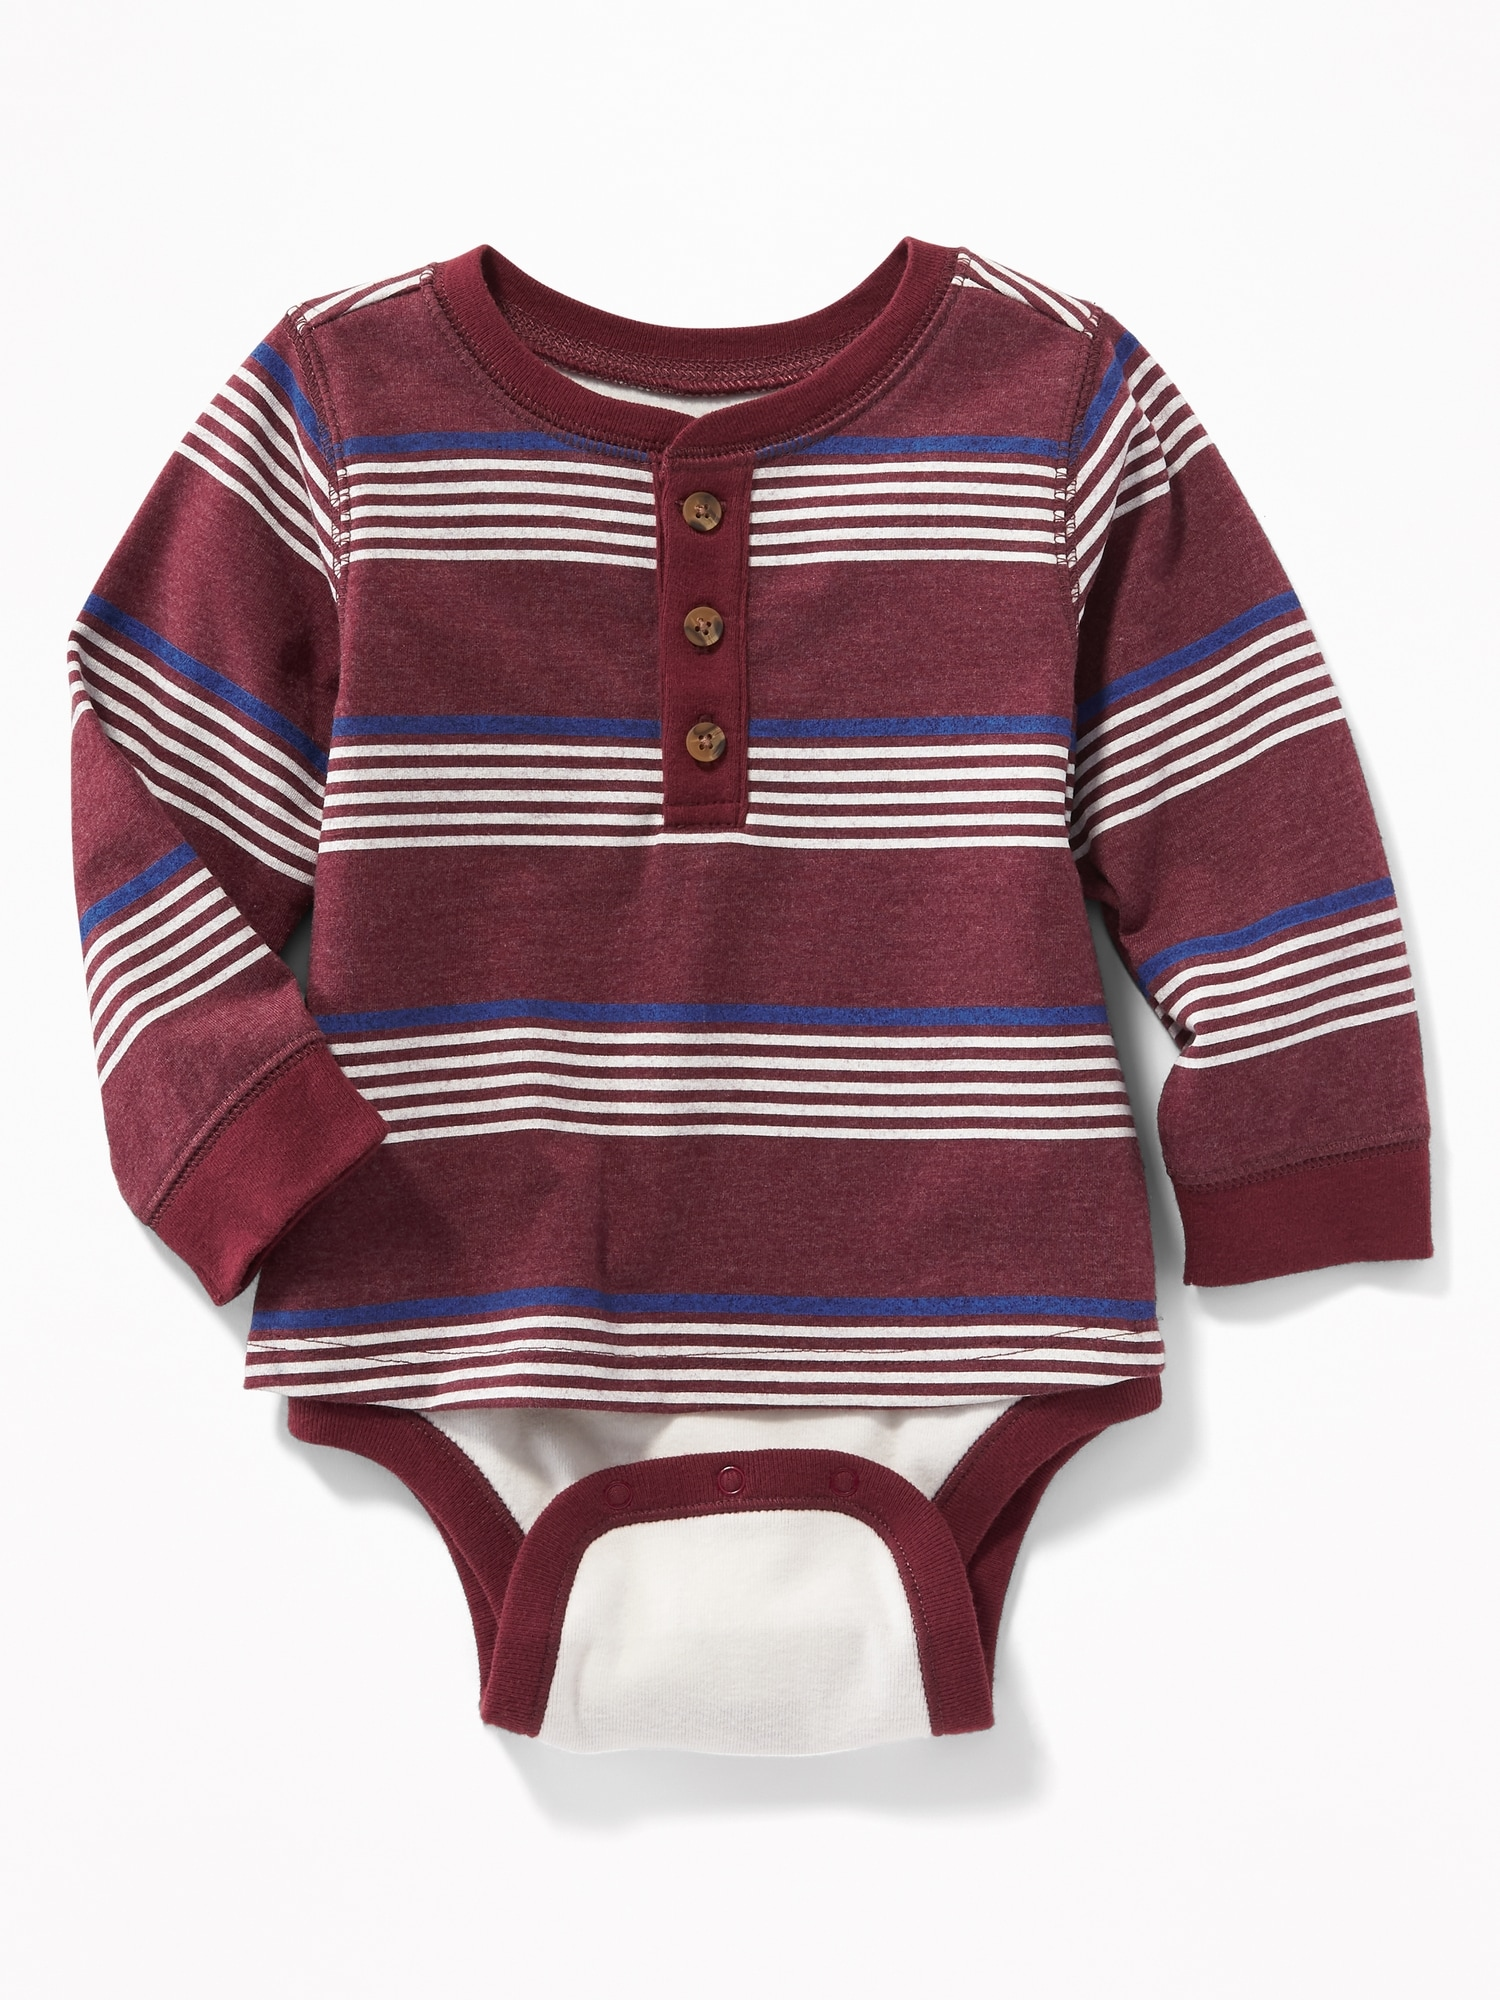 ddb6aeb5f 2-in-1 Striped Henley Bodysuit for Baby | Old Navy